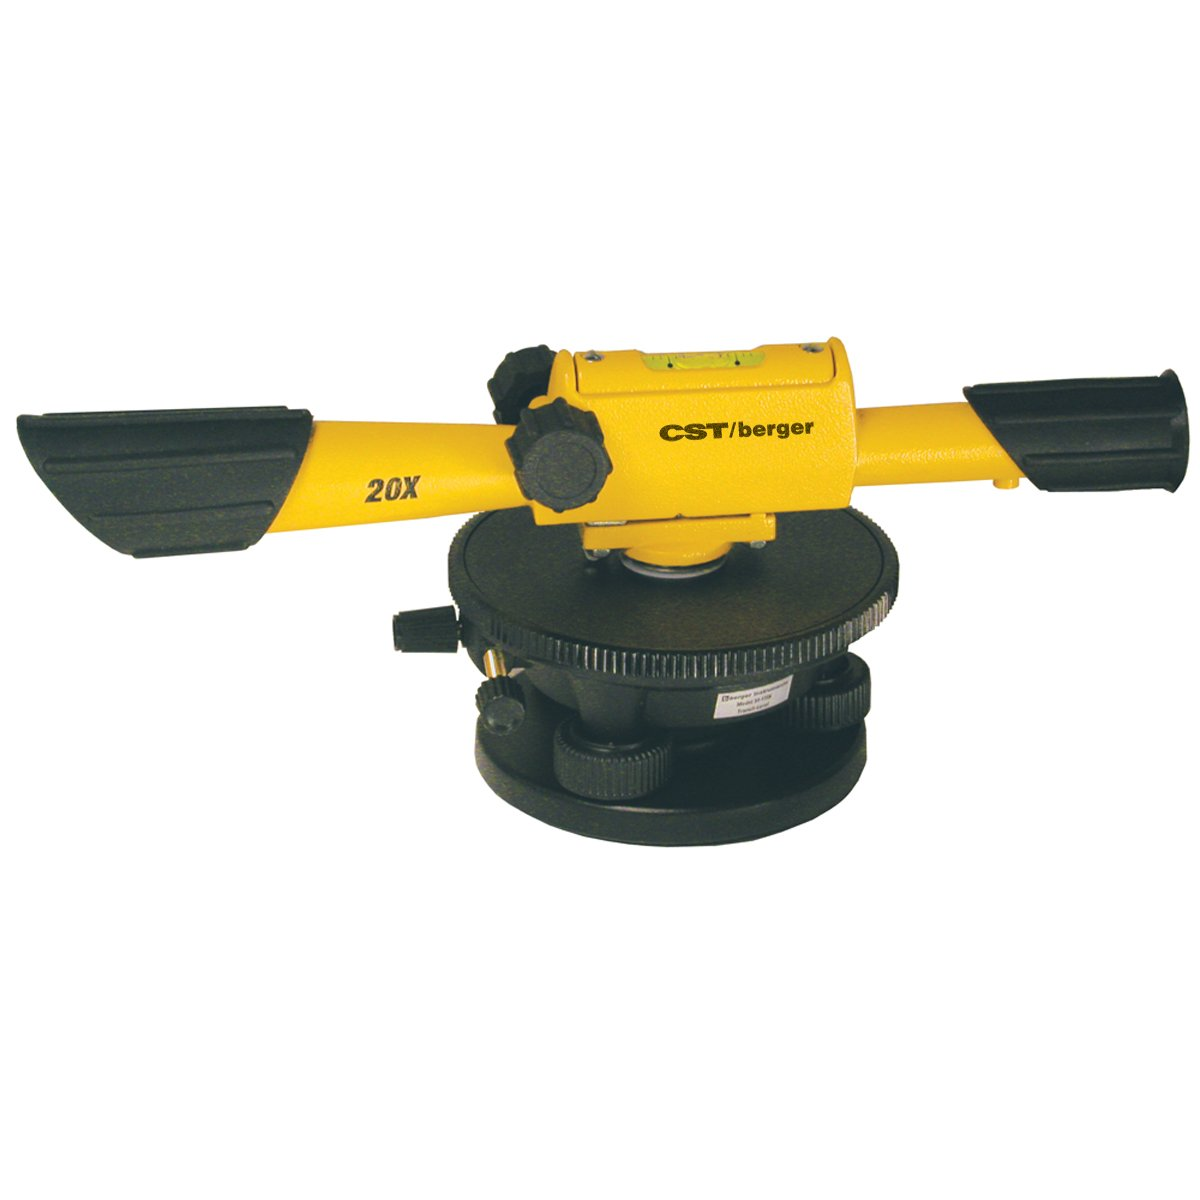 CST/Berger 54-135K Econo 20X Level Package with Tripod, Rod, and Carrying  Case - Transits - Amazon.com